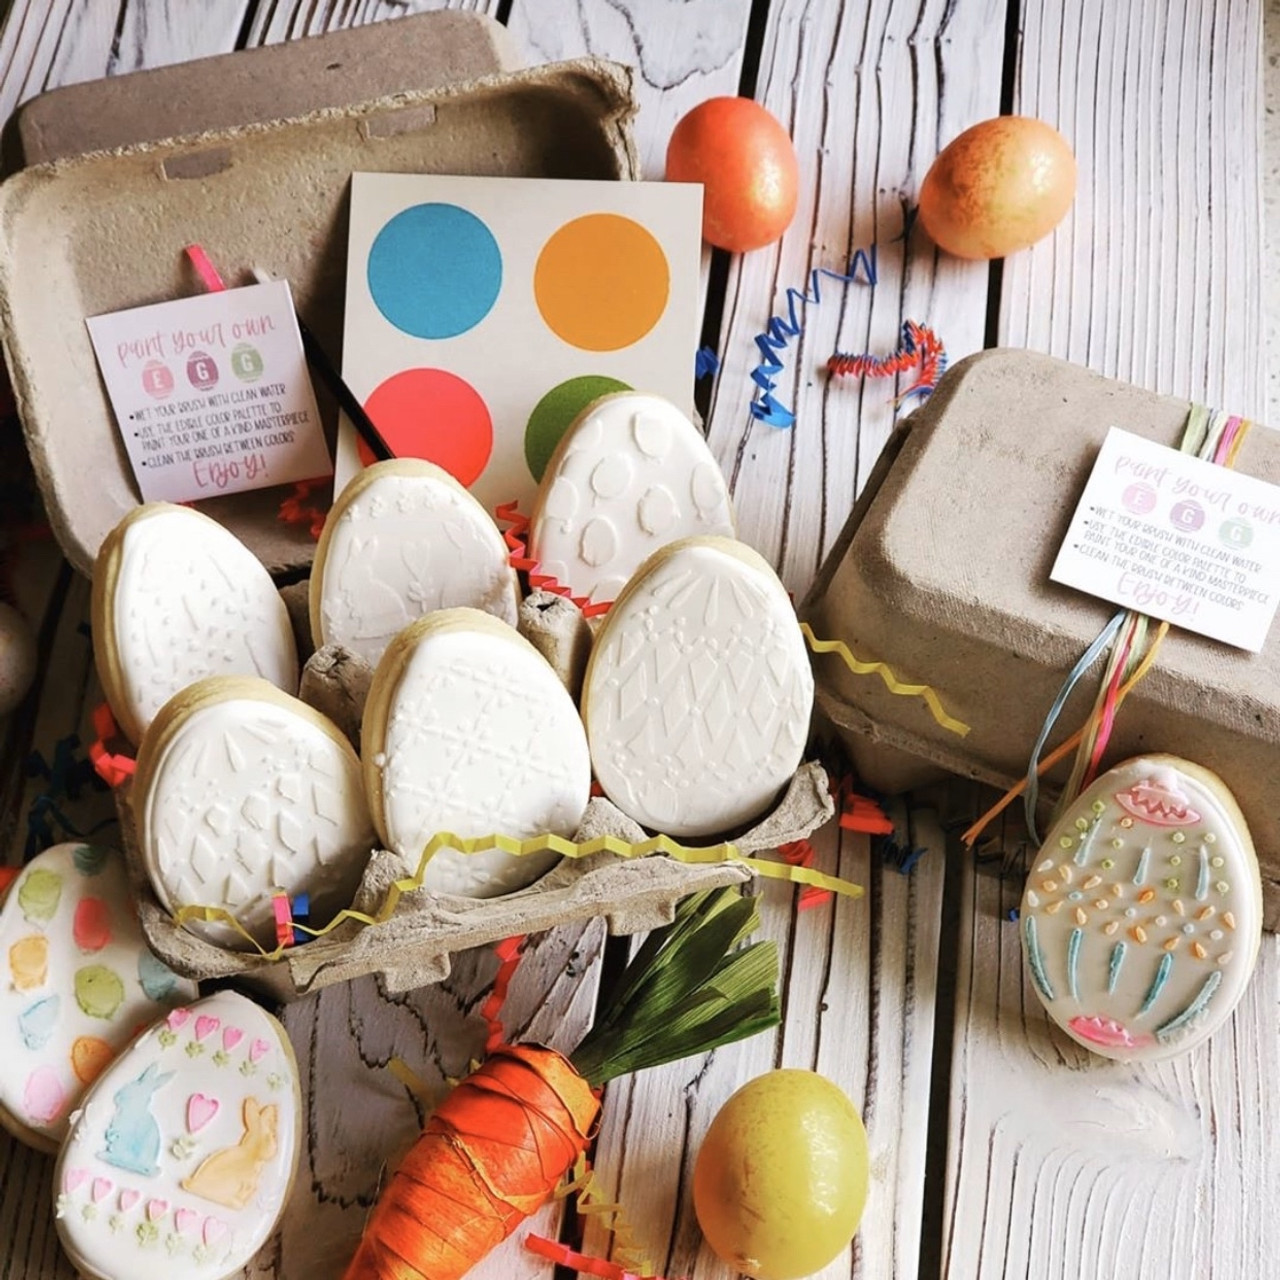 Brown paper pulp carton filled with an easter egg cookie decorating craft.